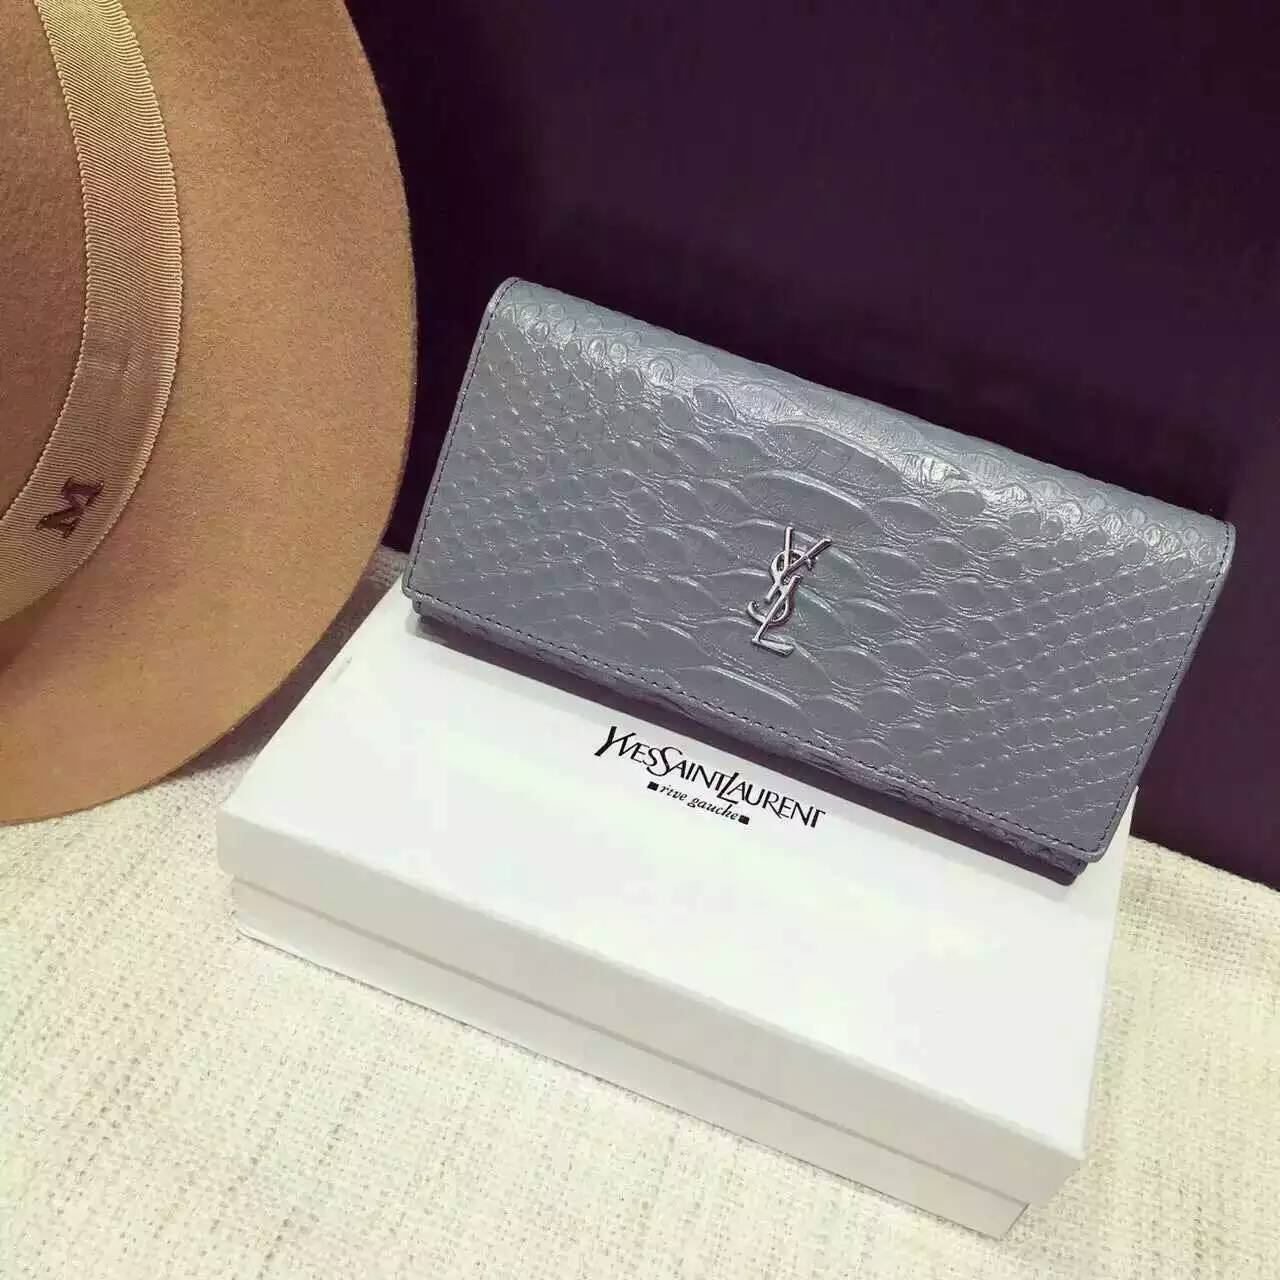 Limited Edition!2016 New Saint Laurent Small Leather Goods Cheap Sale-Saint Laurent Clutch in Light Blue Python Embossed Leather